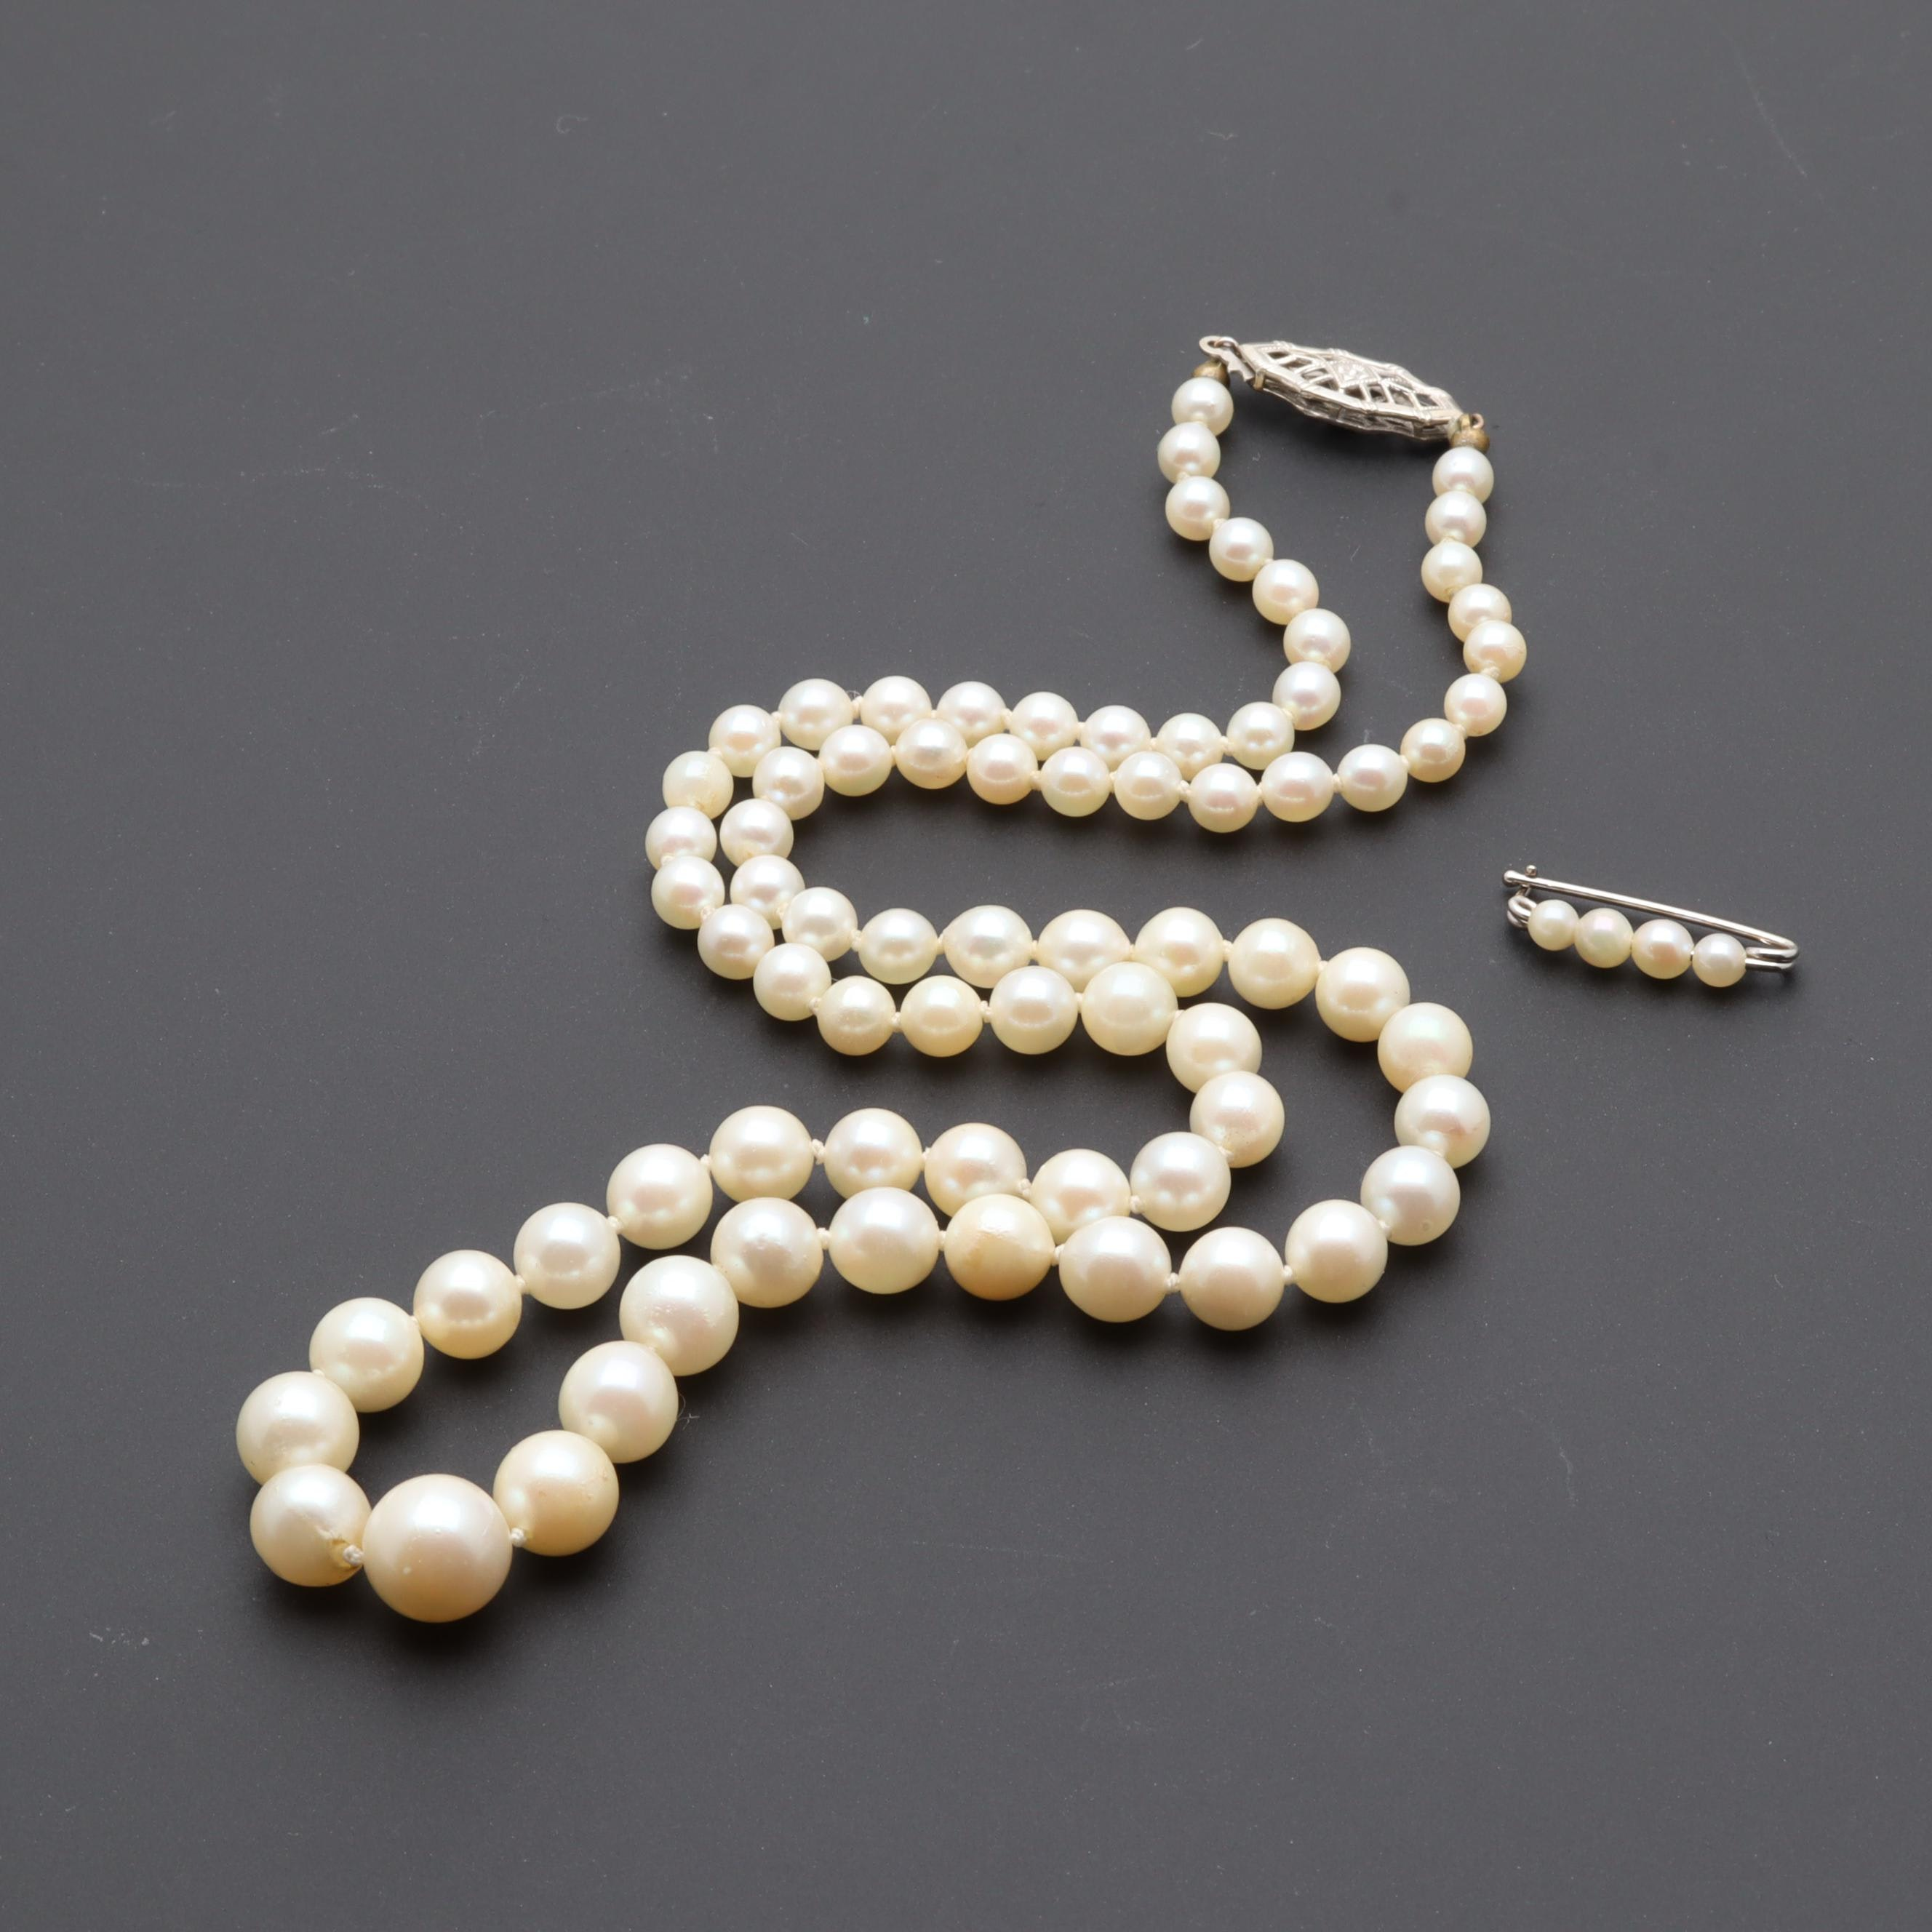 14K White Gold Cultured Pearl Necklace and Pin